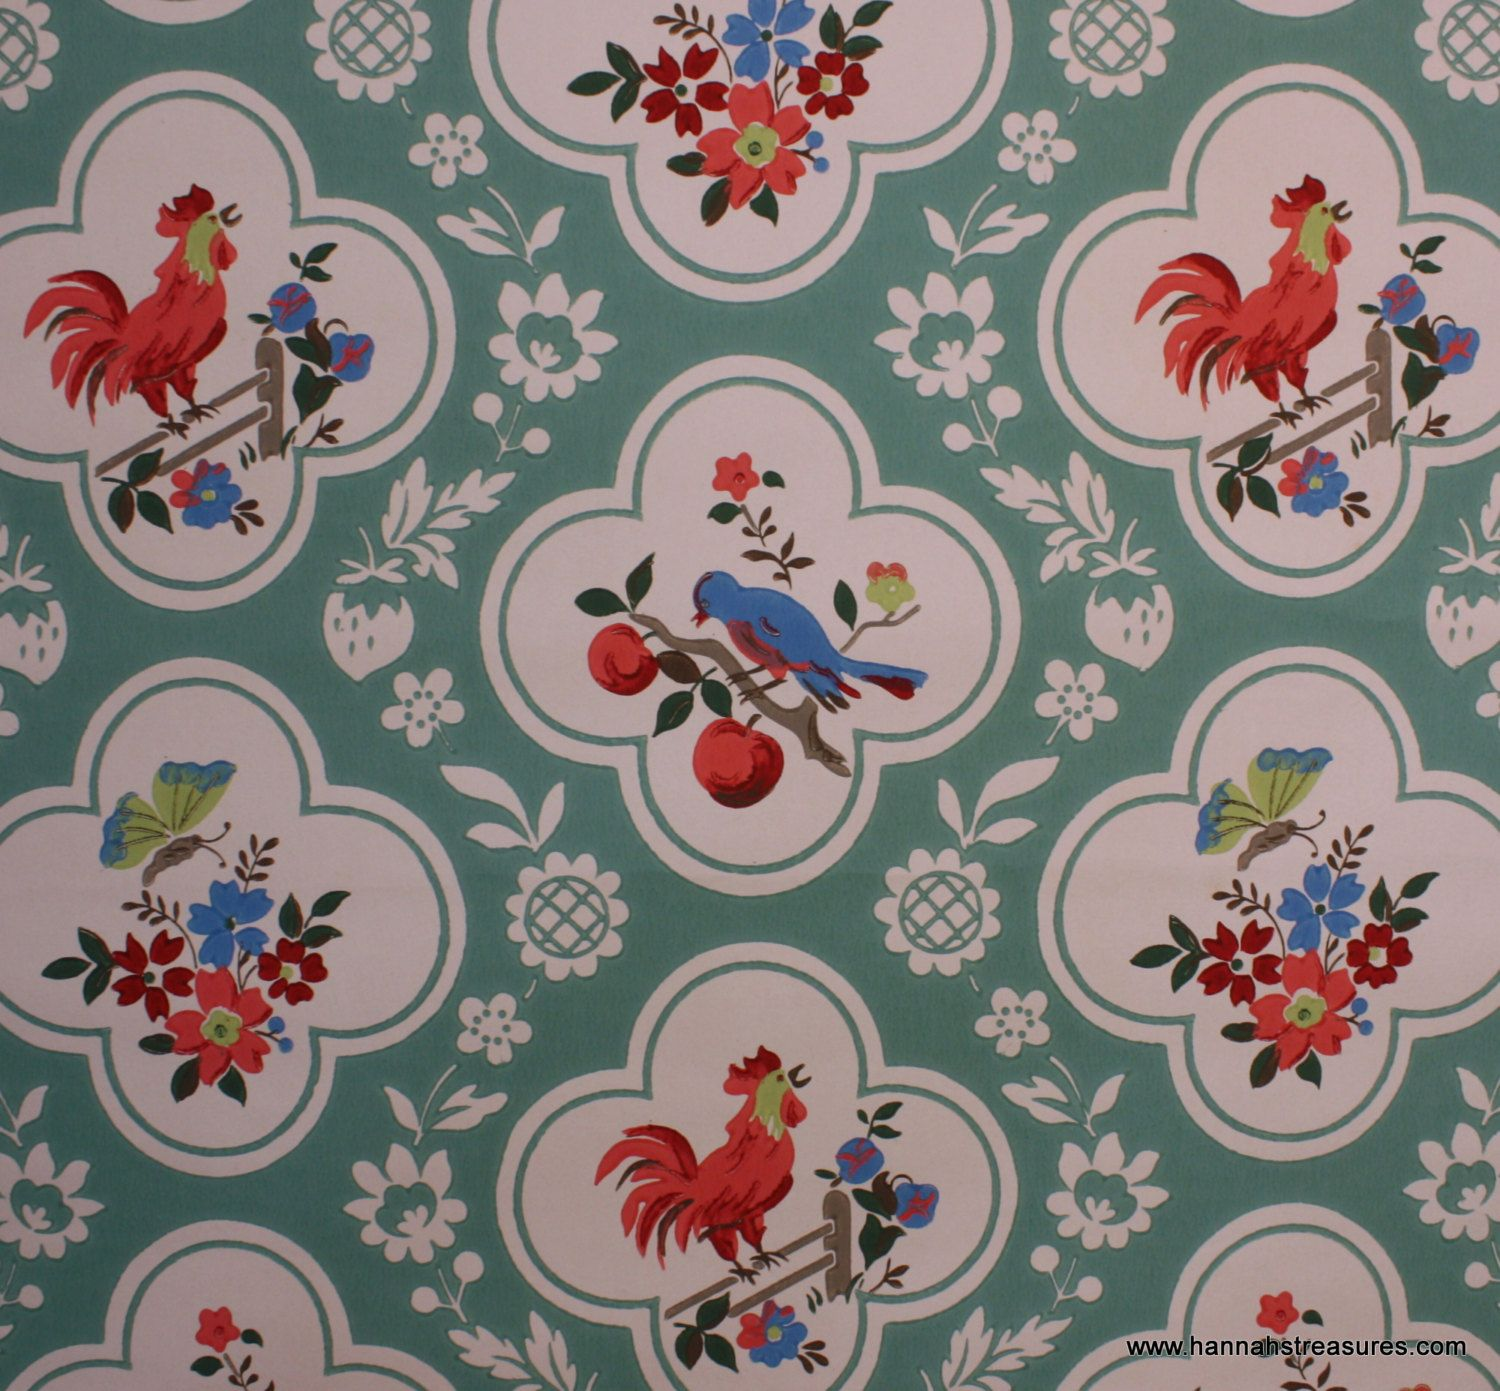 1940 S Vintage Wallpaper Red And Aqua With Birds Cherries